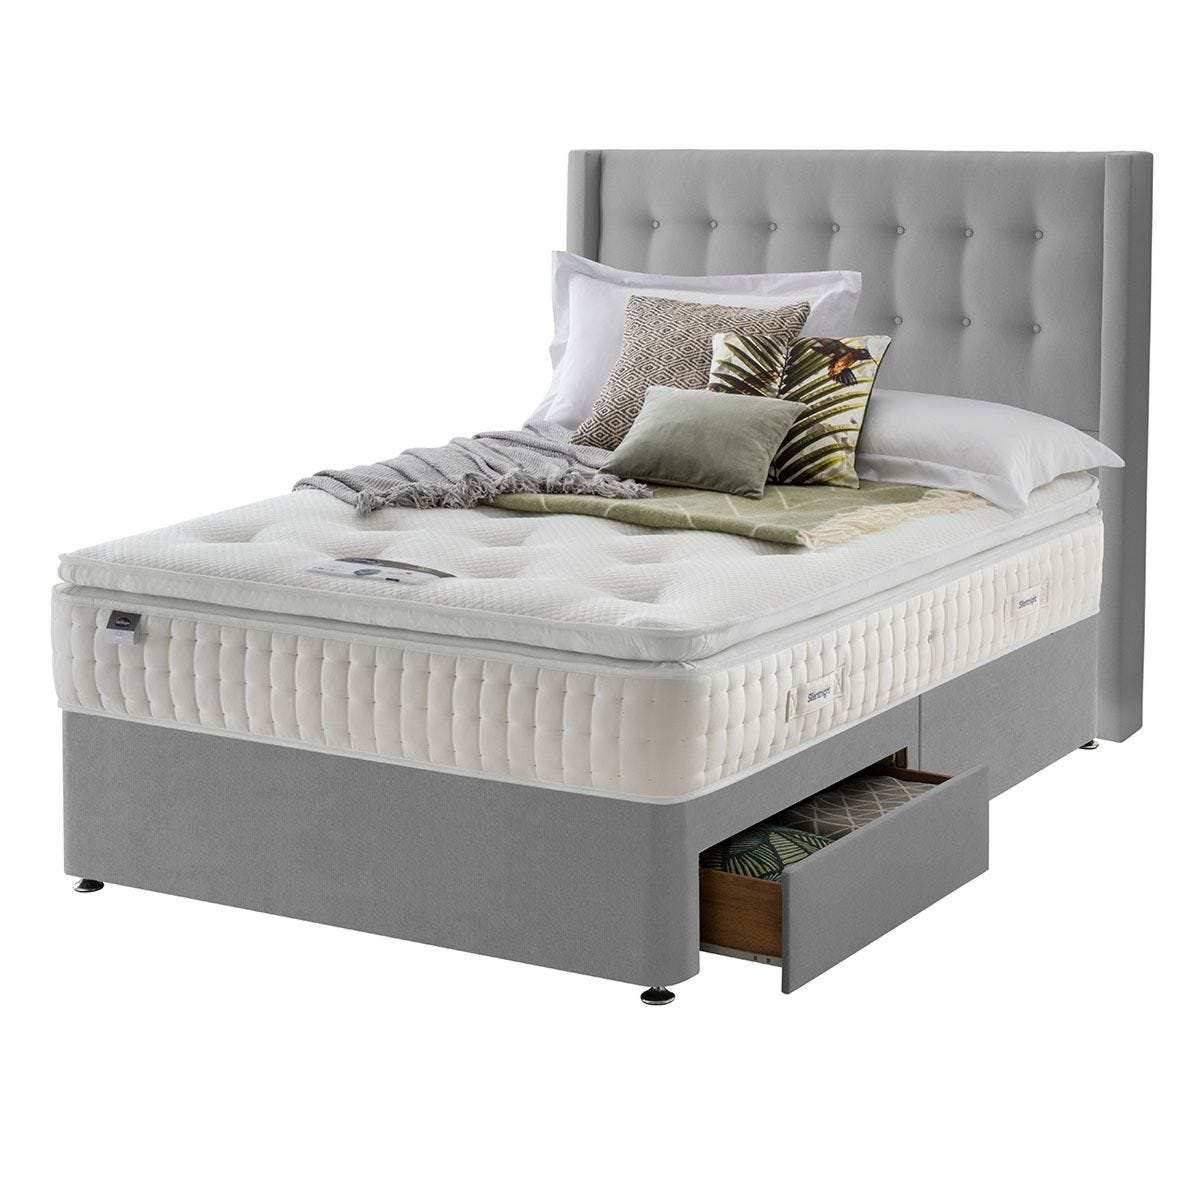 Silentnight Mirapocket Latex 1400 2-Drawer Divan Bed - Grey